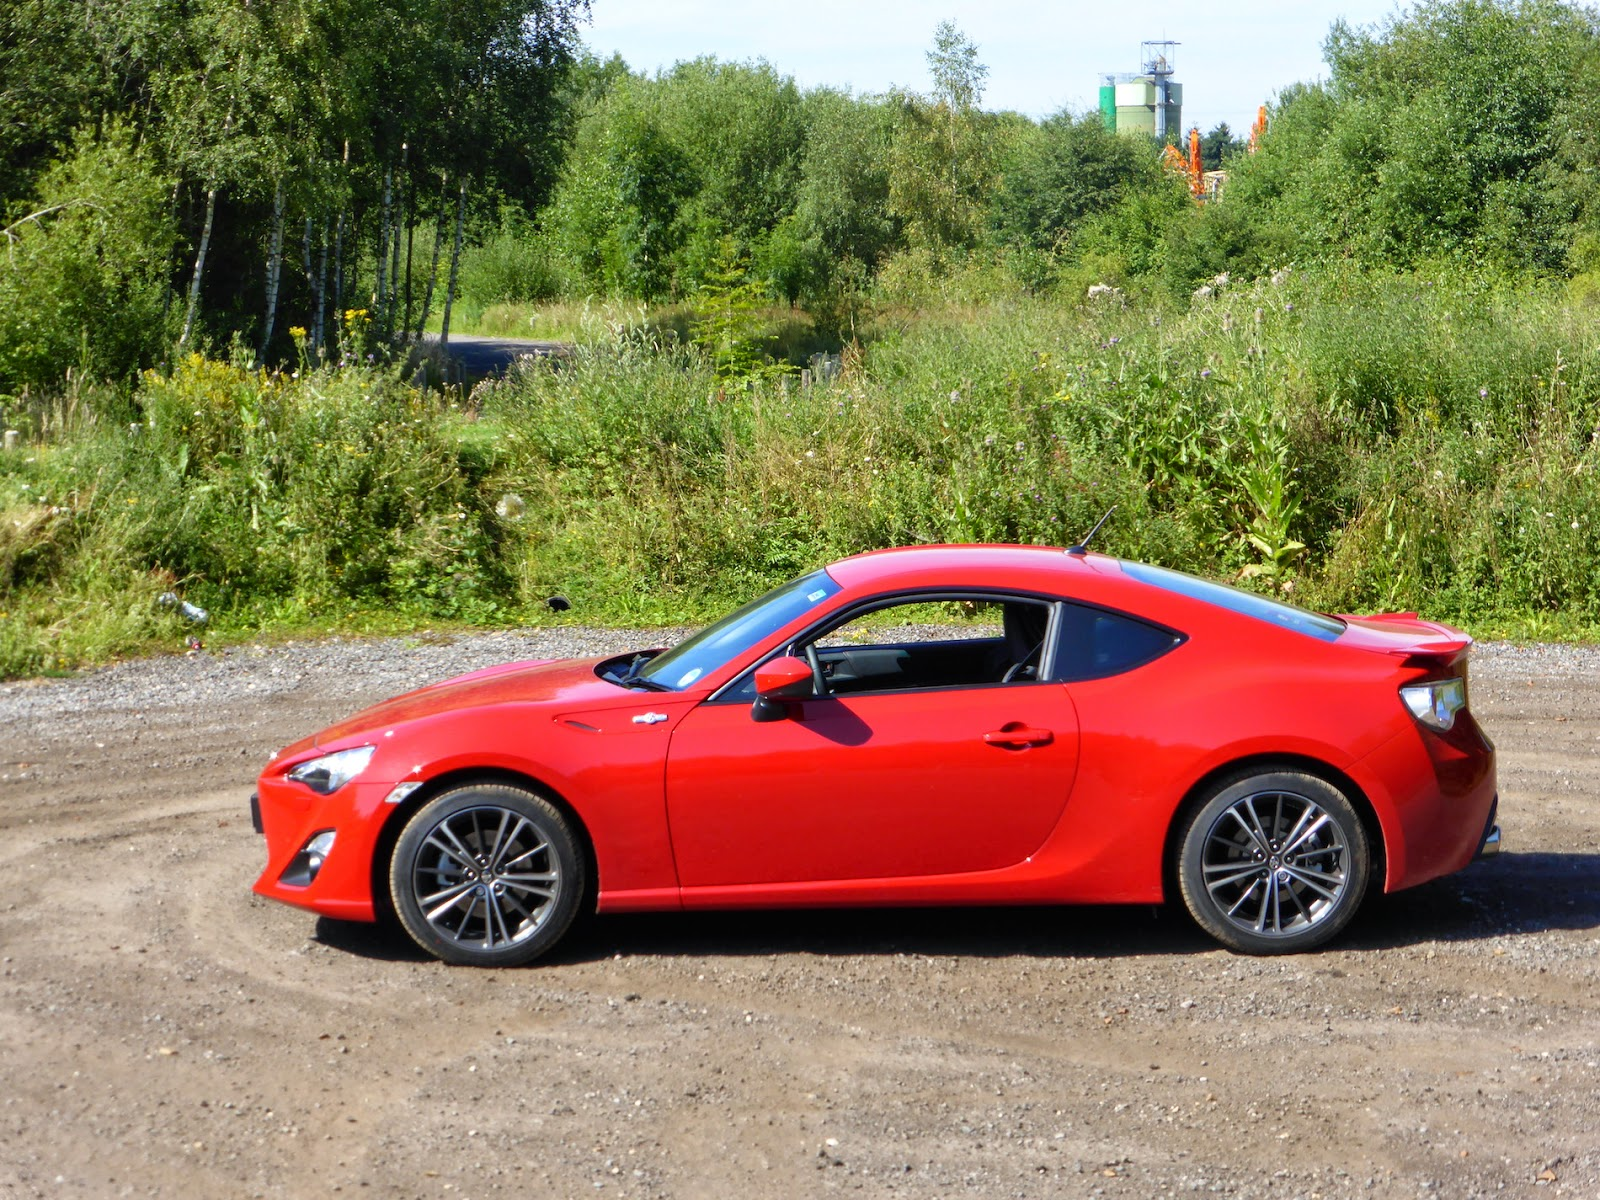 2014 Toyota Gt86 Review The Crittenden Automotive Library